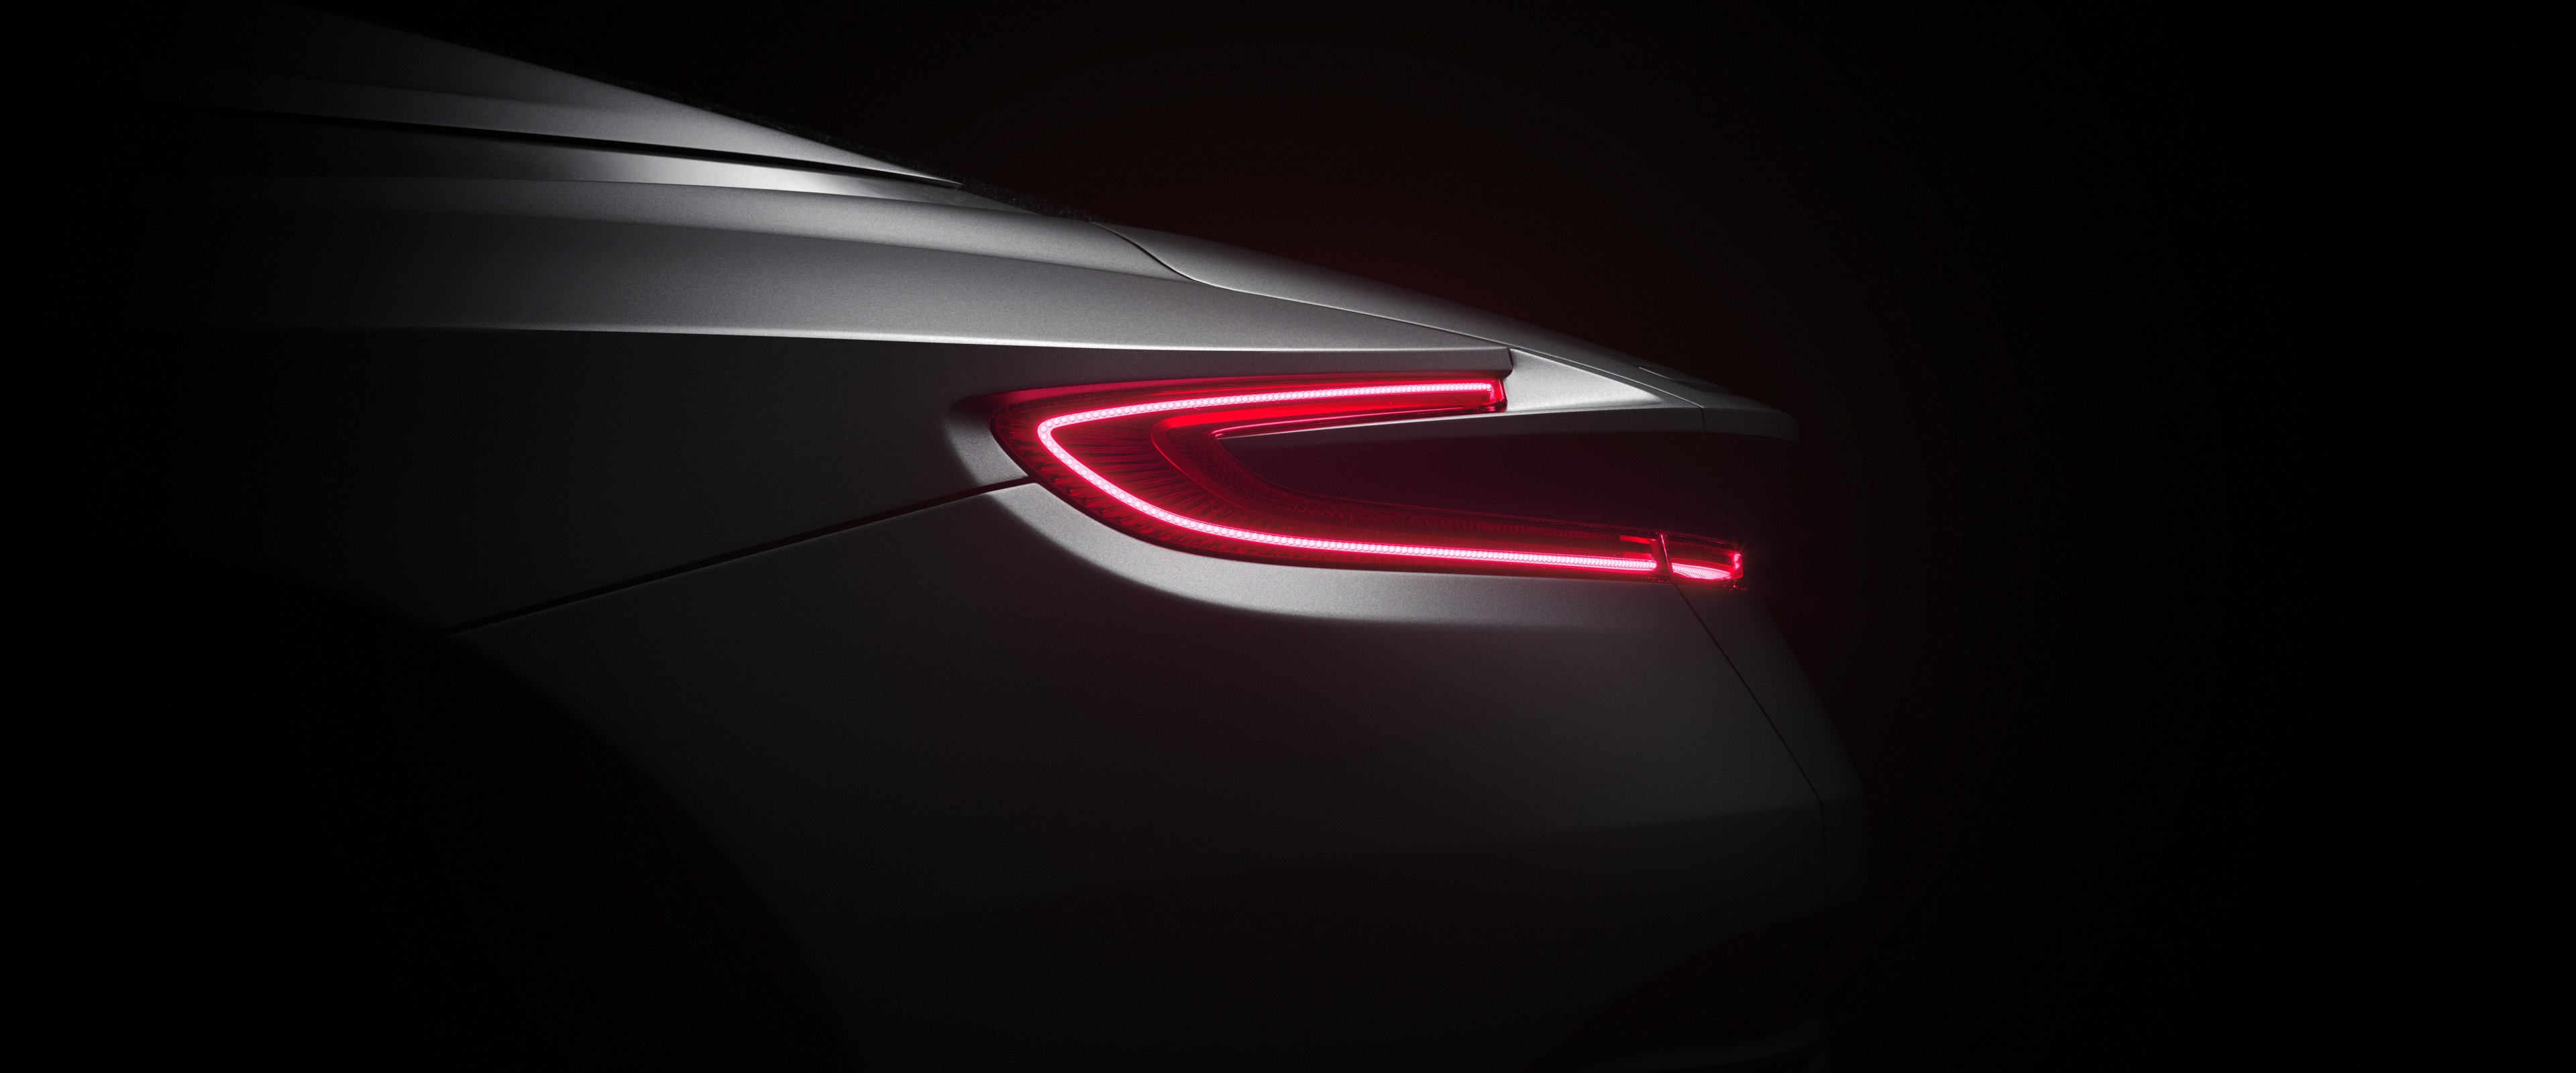 Aston Martin DB11 2017 - Tail Lights